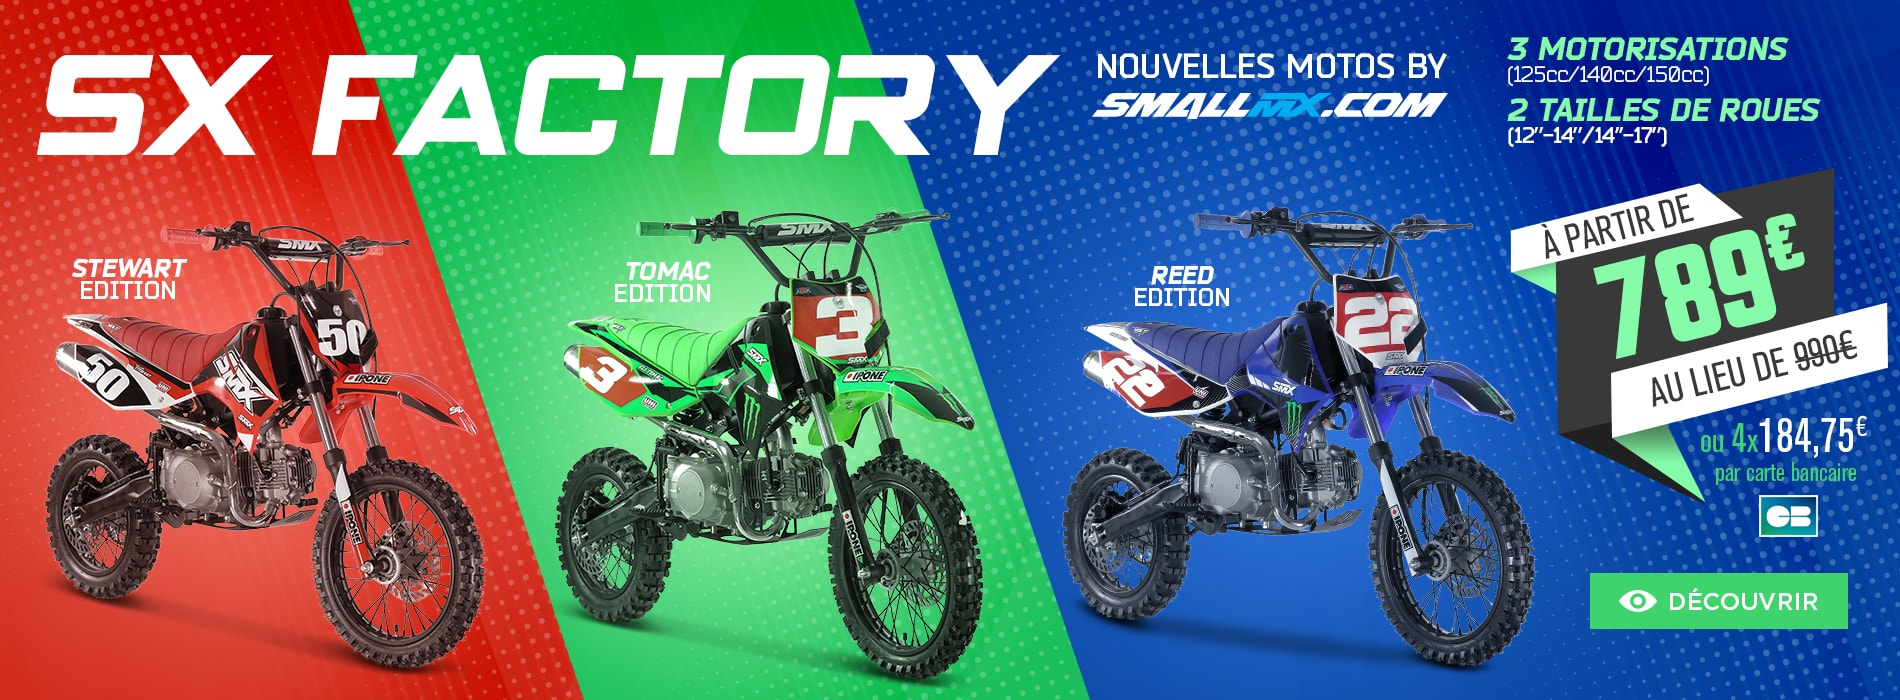 Small MX - SX Factory